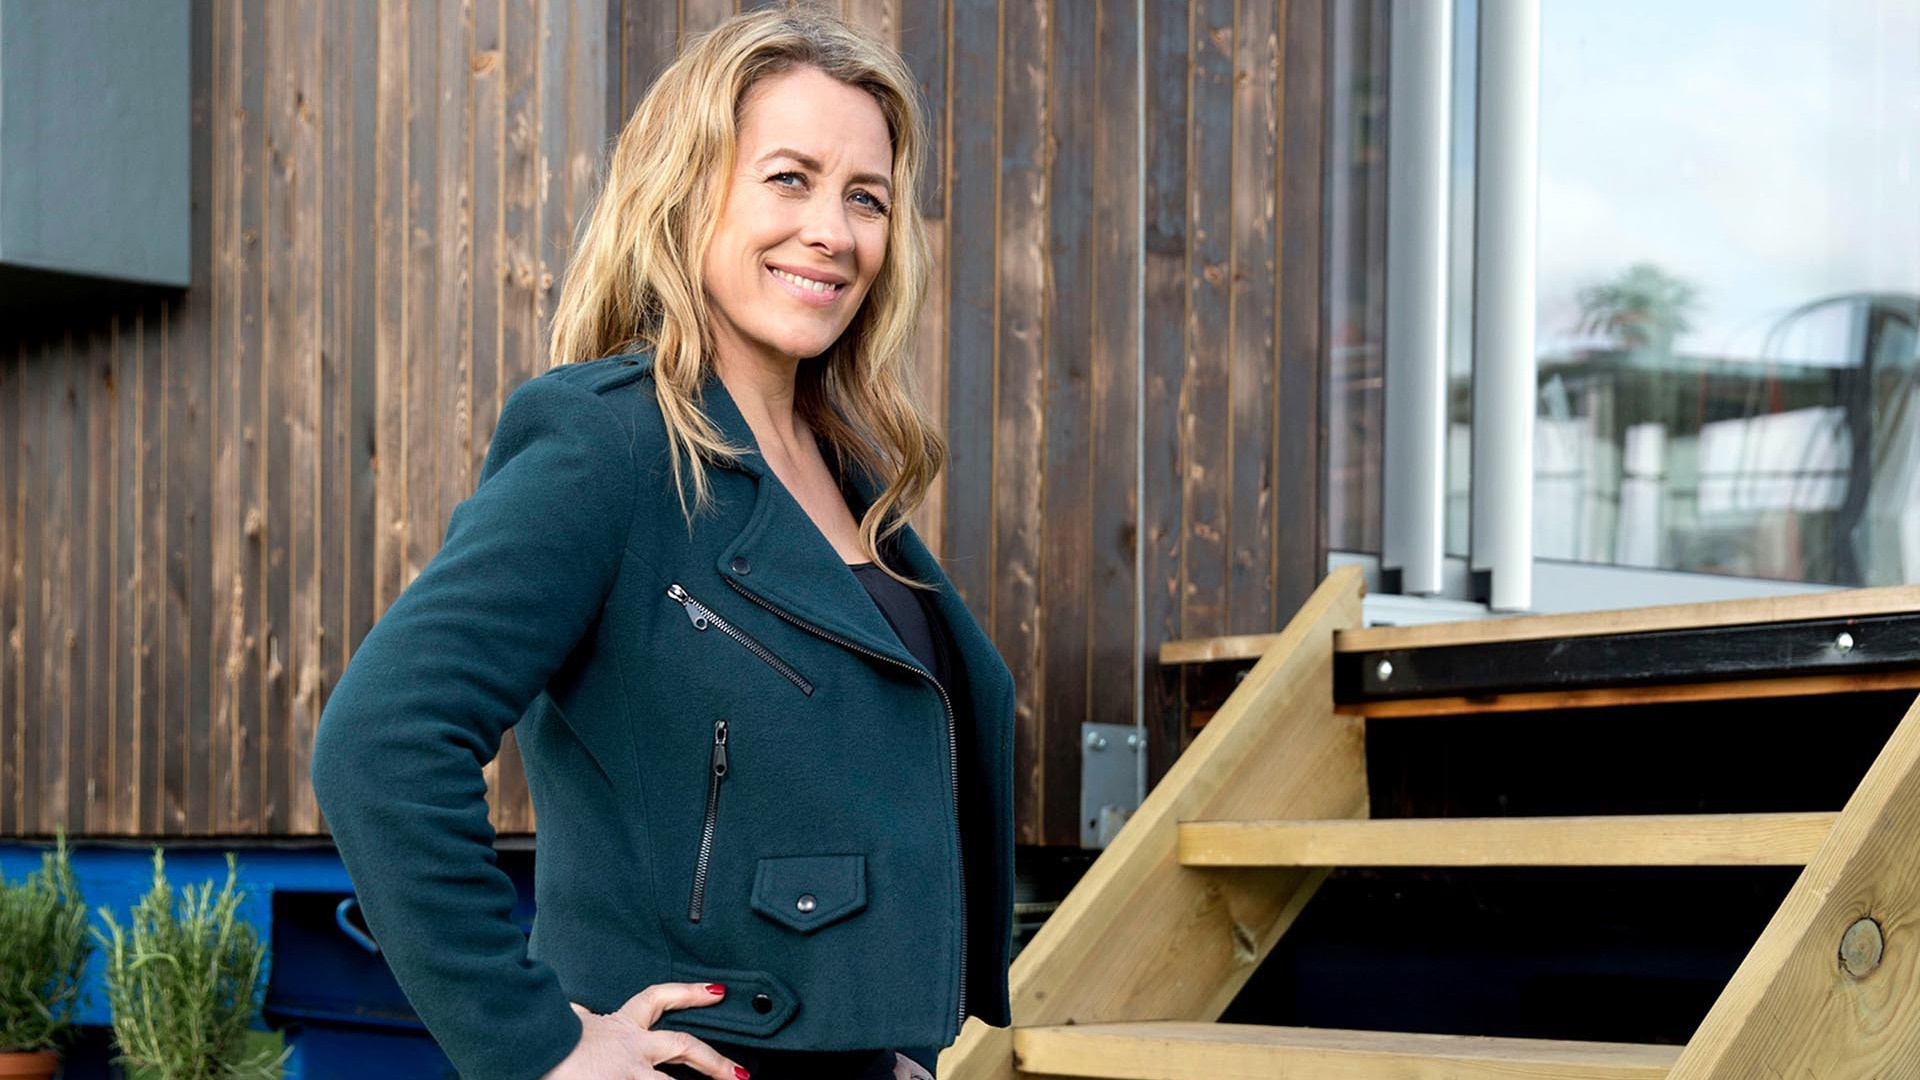 how to live mortgage free with sarah beeny all 4 rh channel4 com channel 4 sarah beeny rise hall